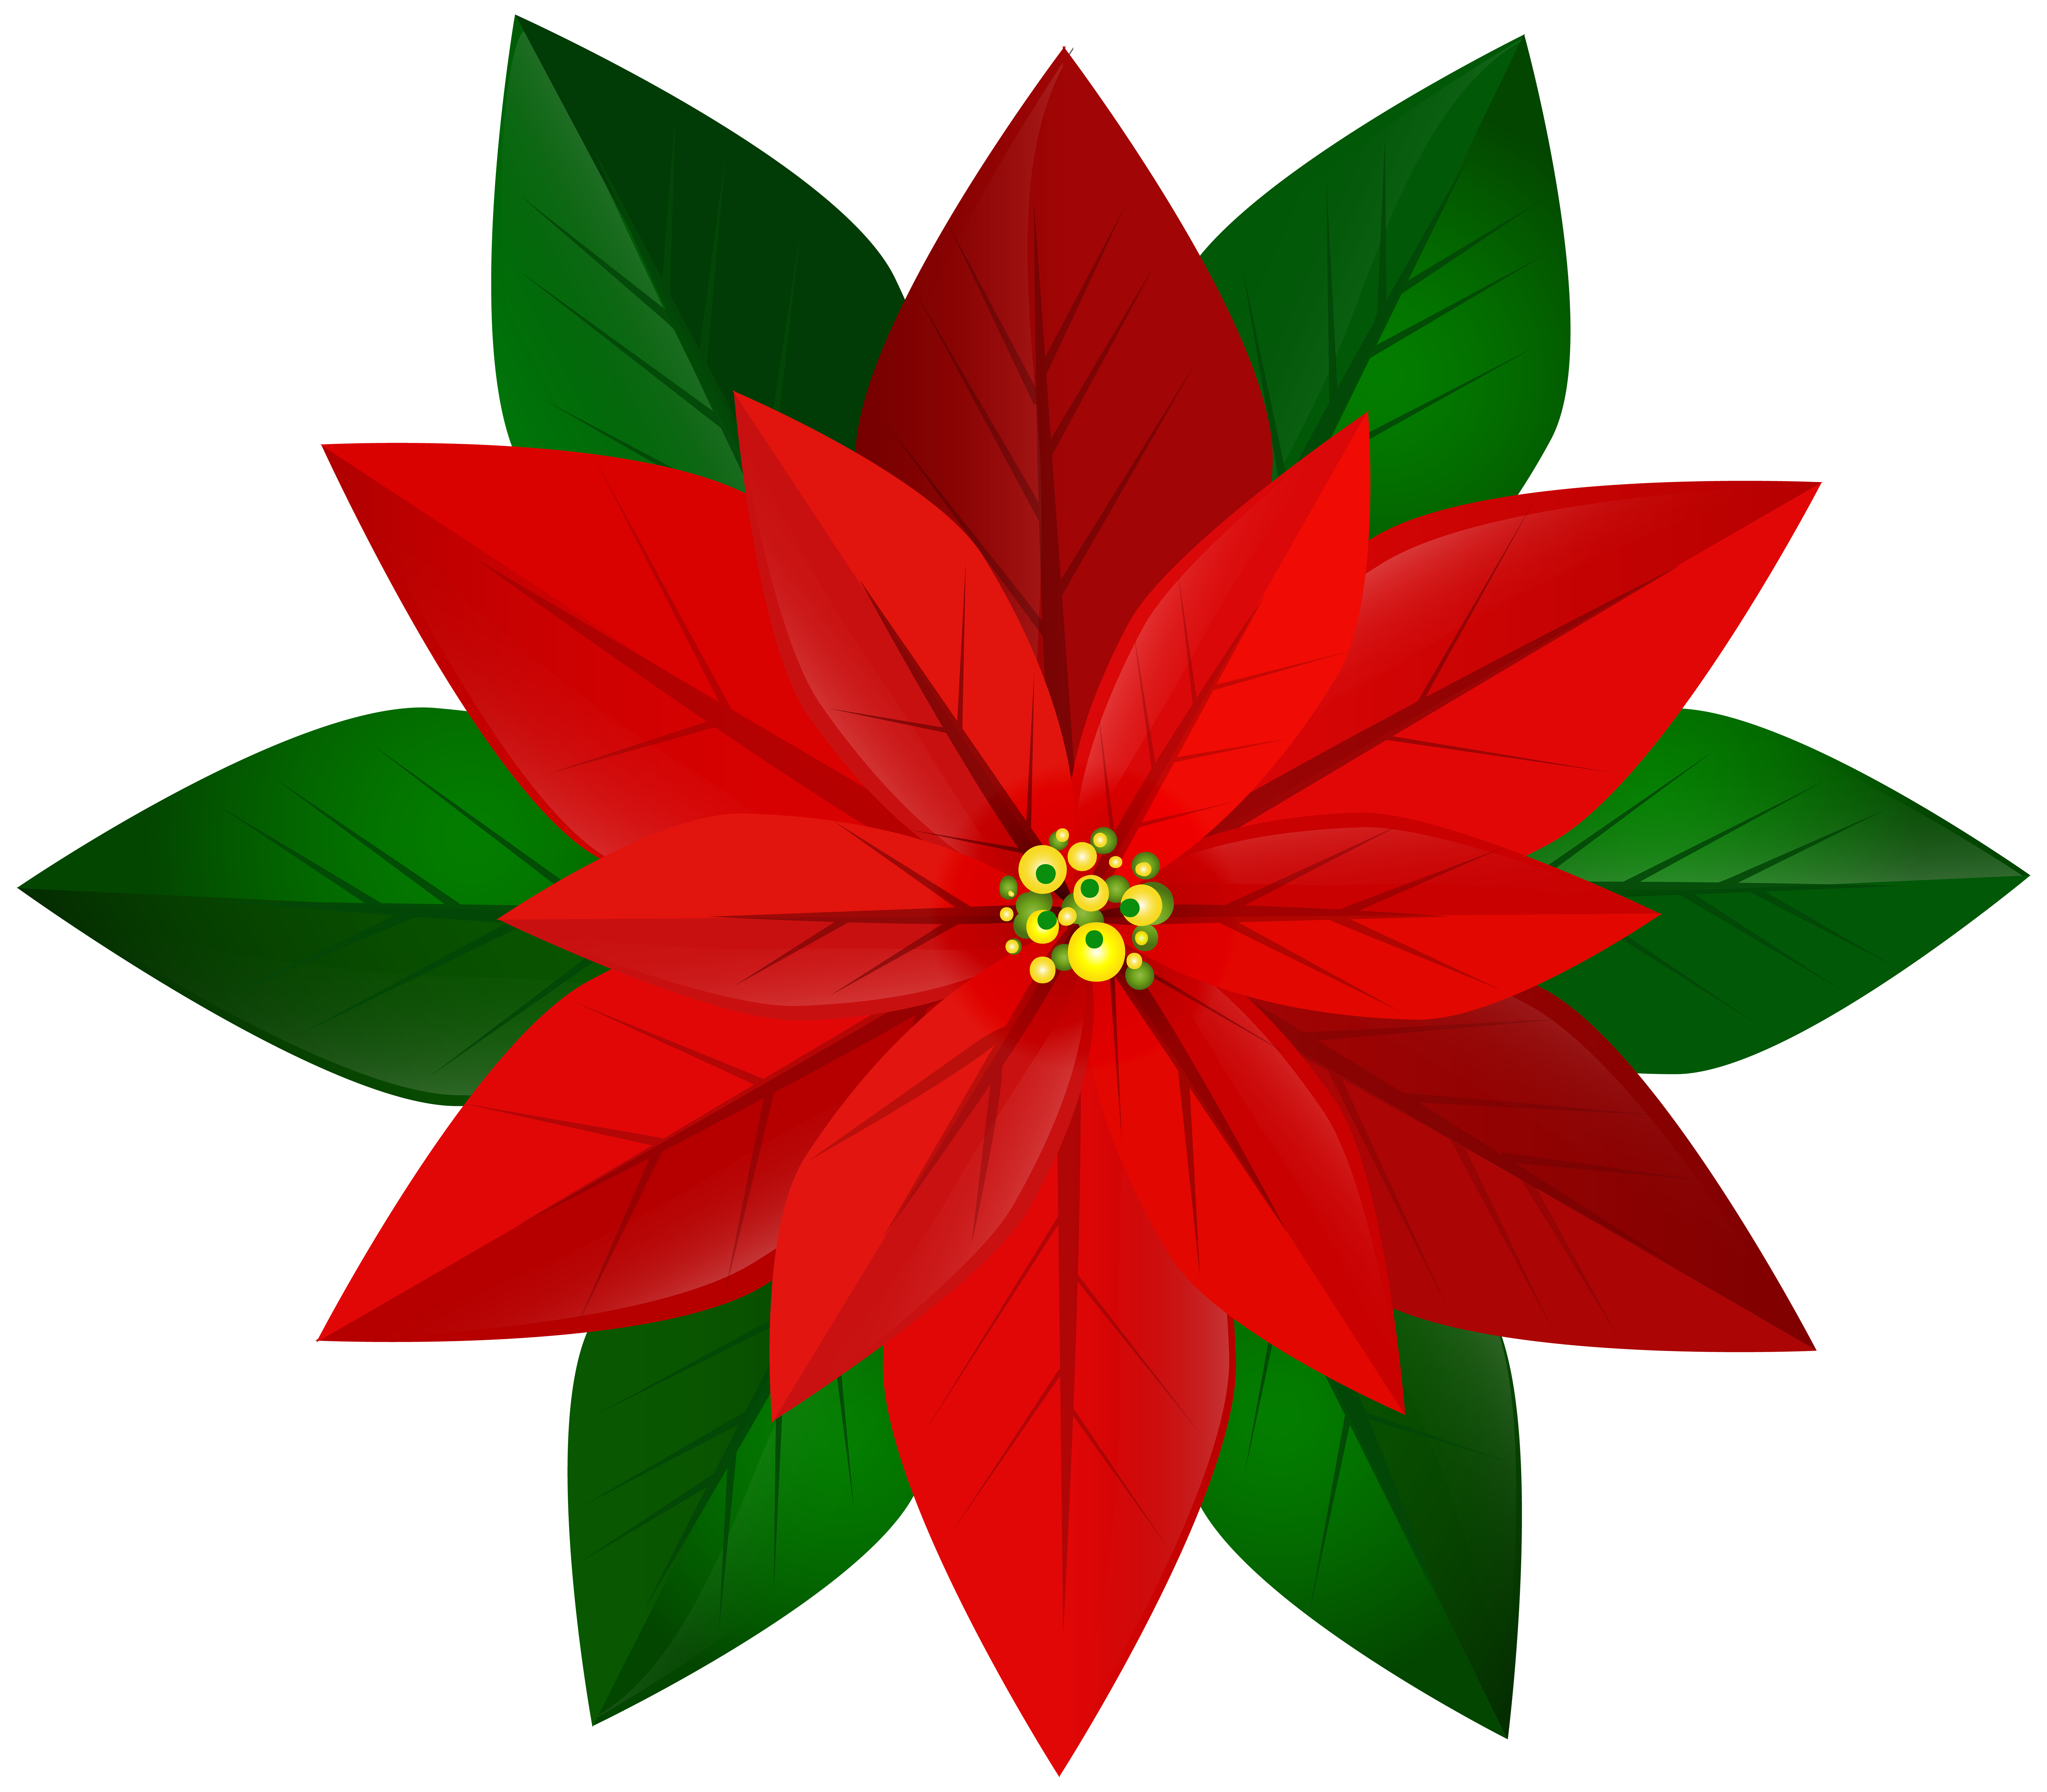 Poinsettias clipart yuletide. Christmas red poinsettia png